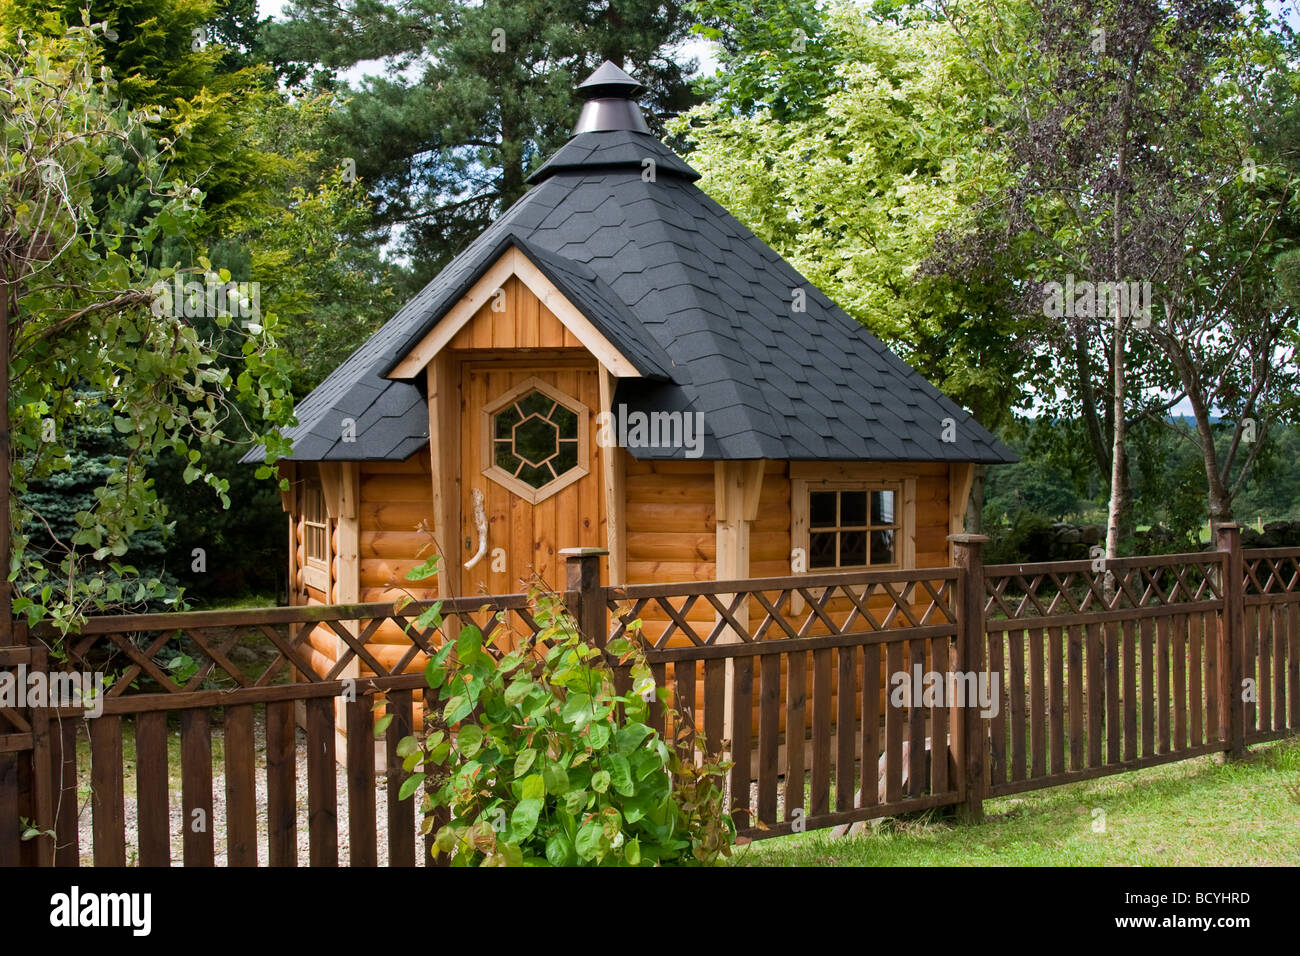 garden sheds edinburgh simple garden sheds scotland glasgow h in design inspiration - Garden Sheds Edinburgh